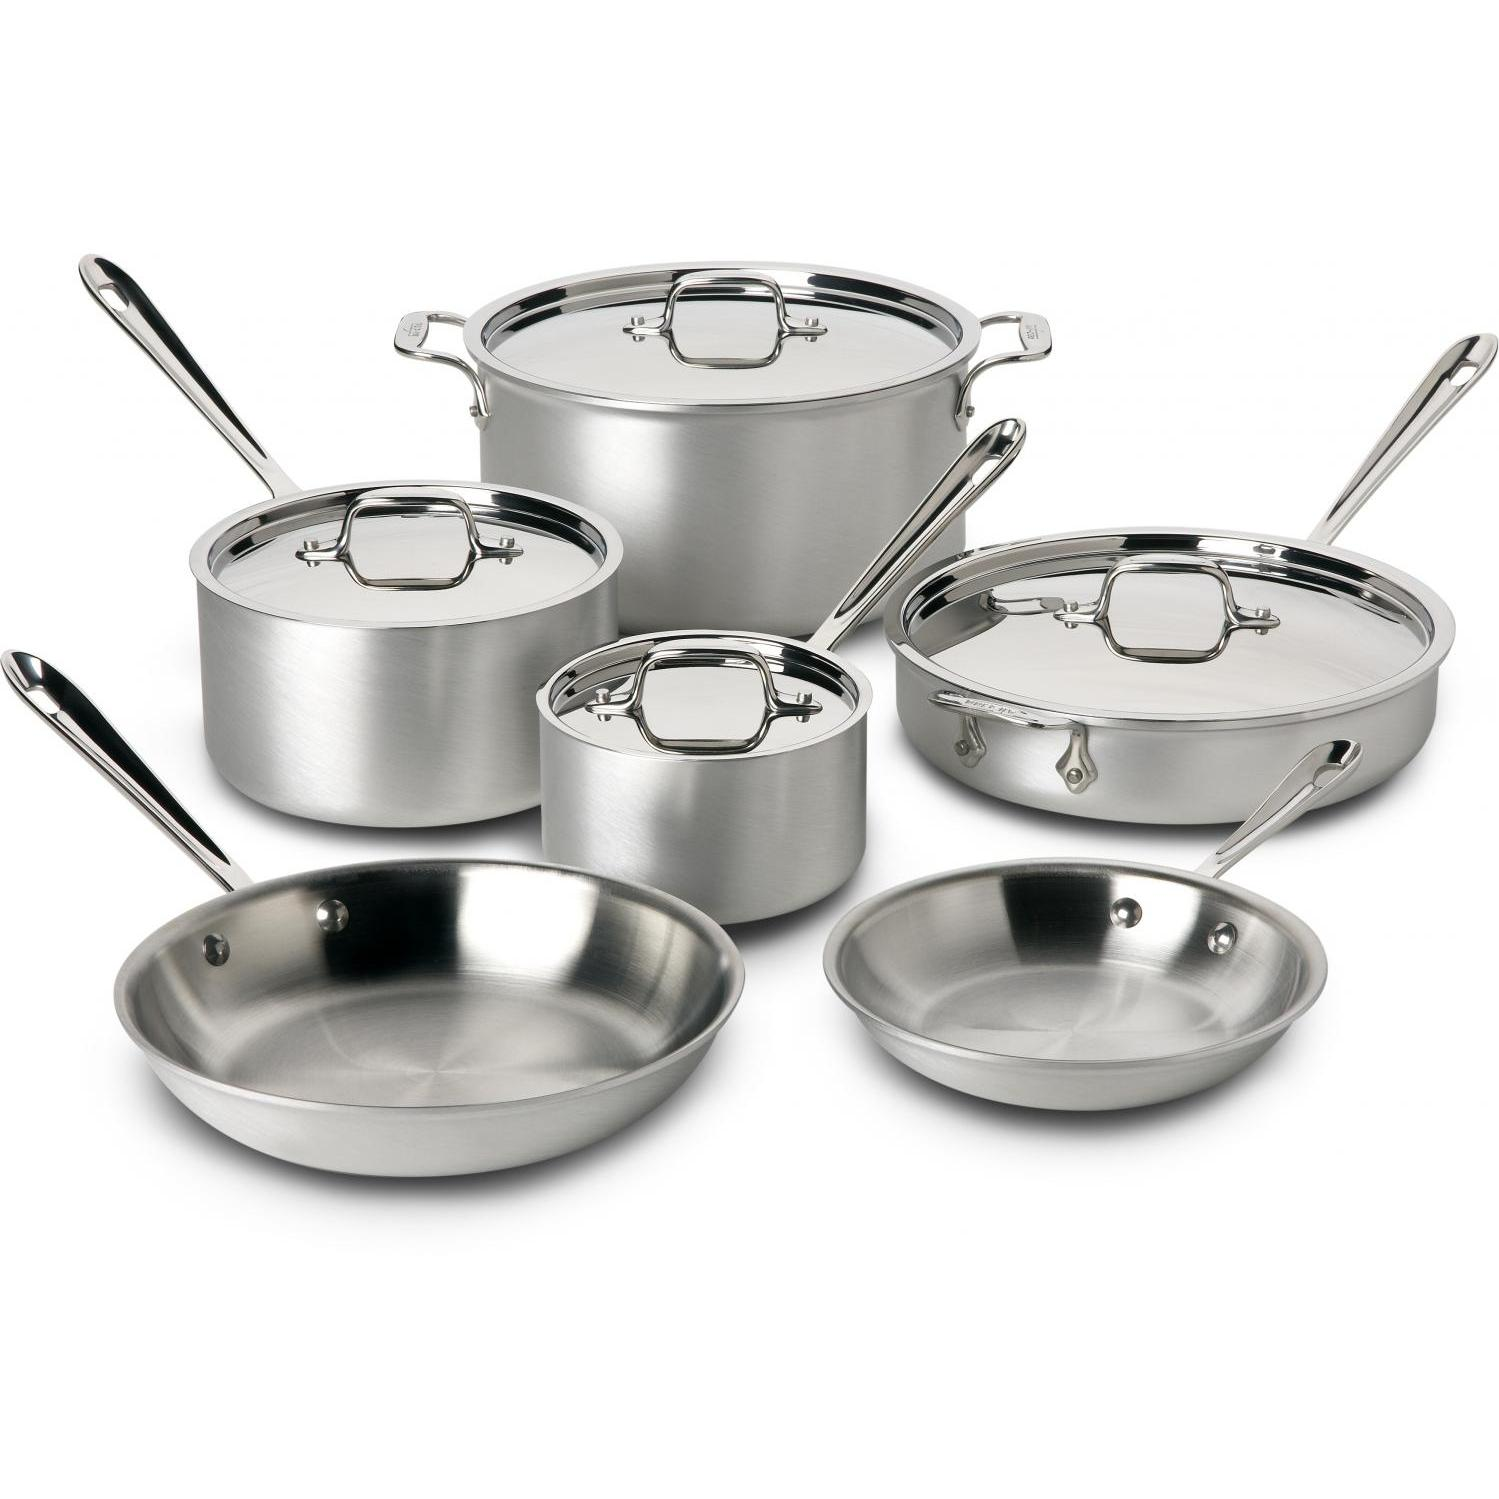 Picture of All-Clad Master Chef 2 Stainless 10-Piece Cookware Set